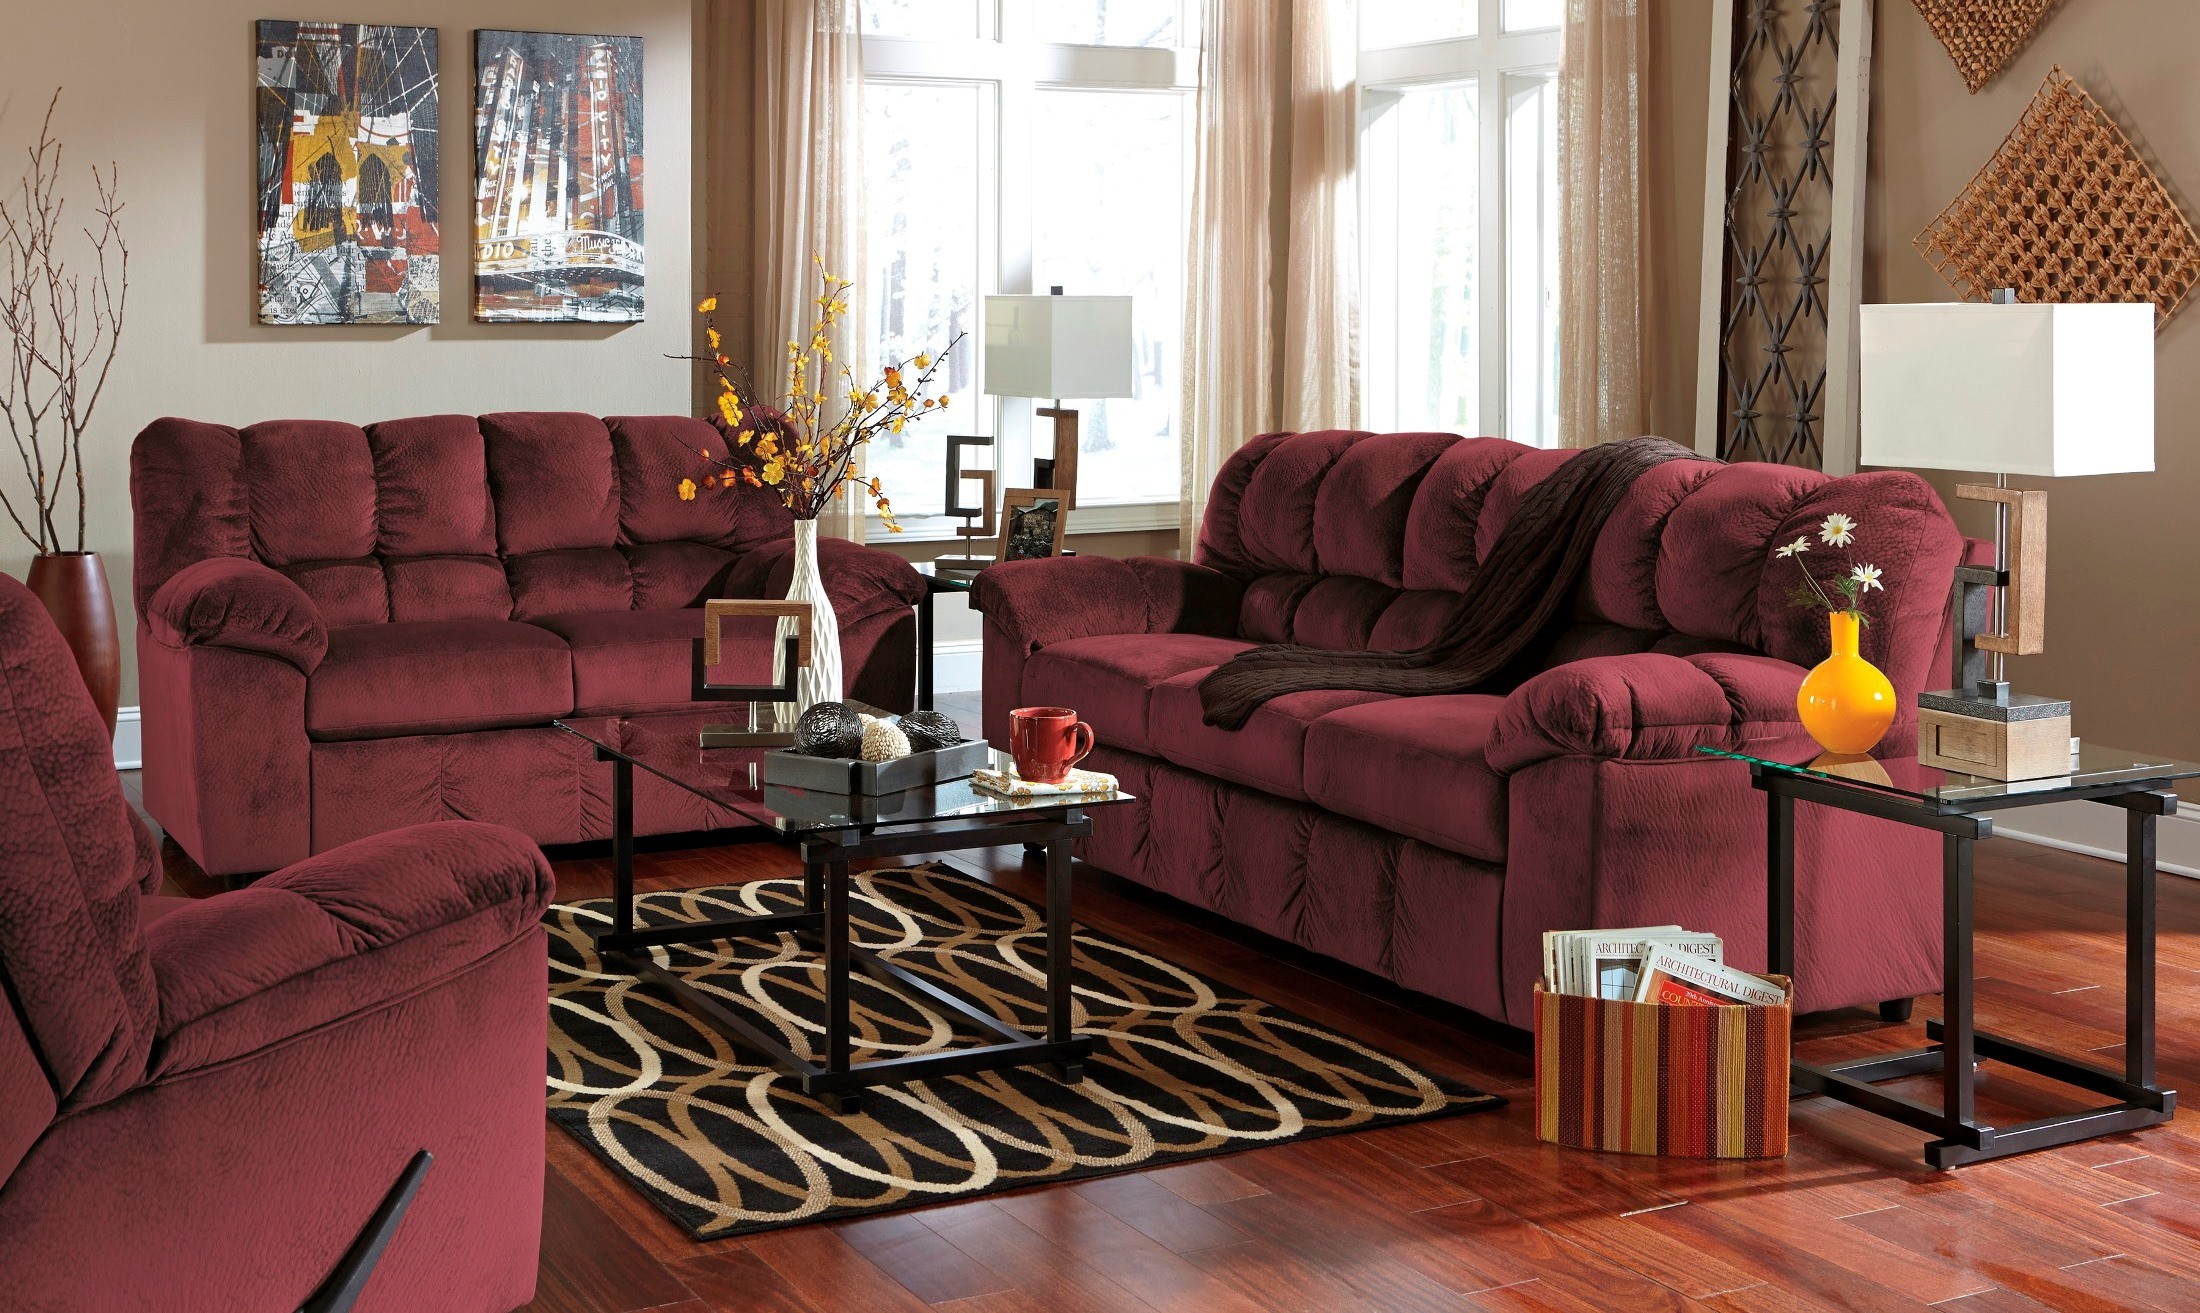 rustic julson burgundy living room set | Julson Burgundy Living Room Set from Ashley (26602-38-35 ...